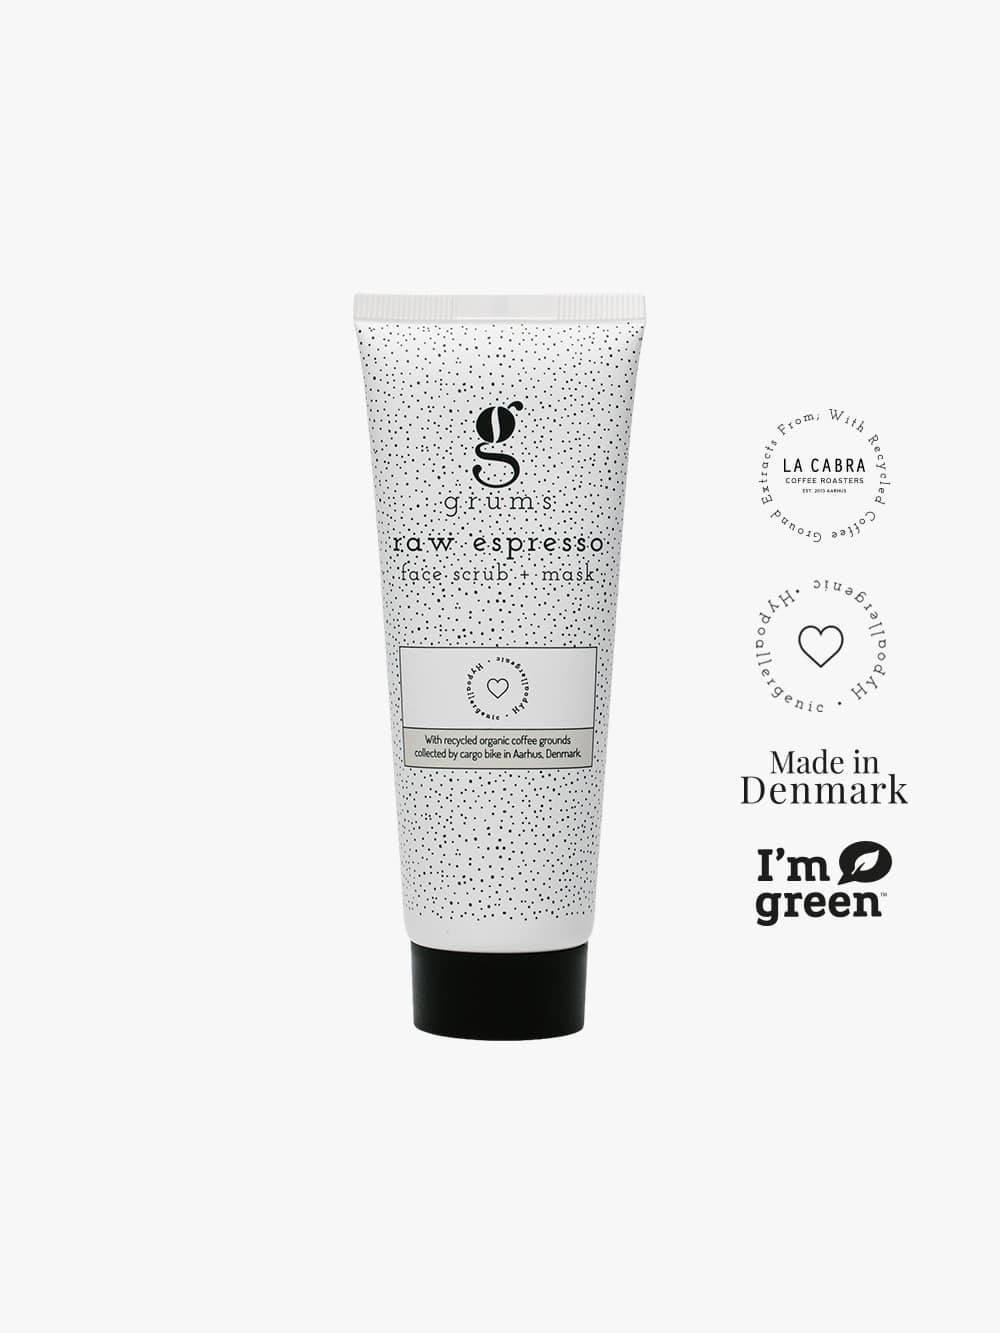 grums raw espresso face scrub mask